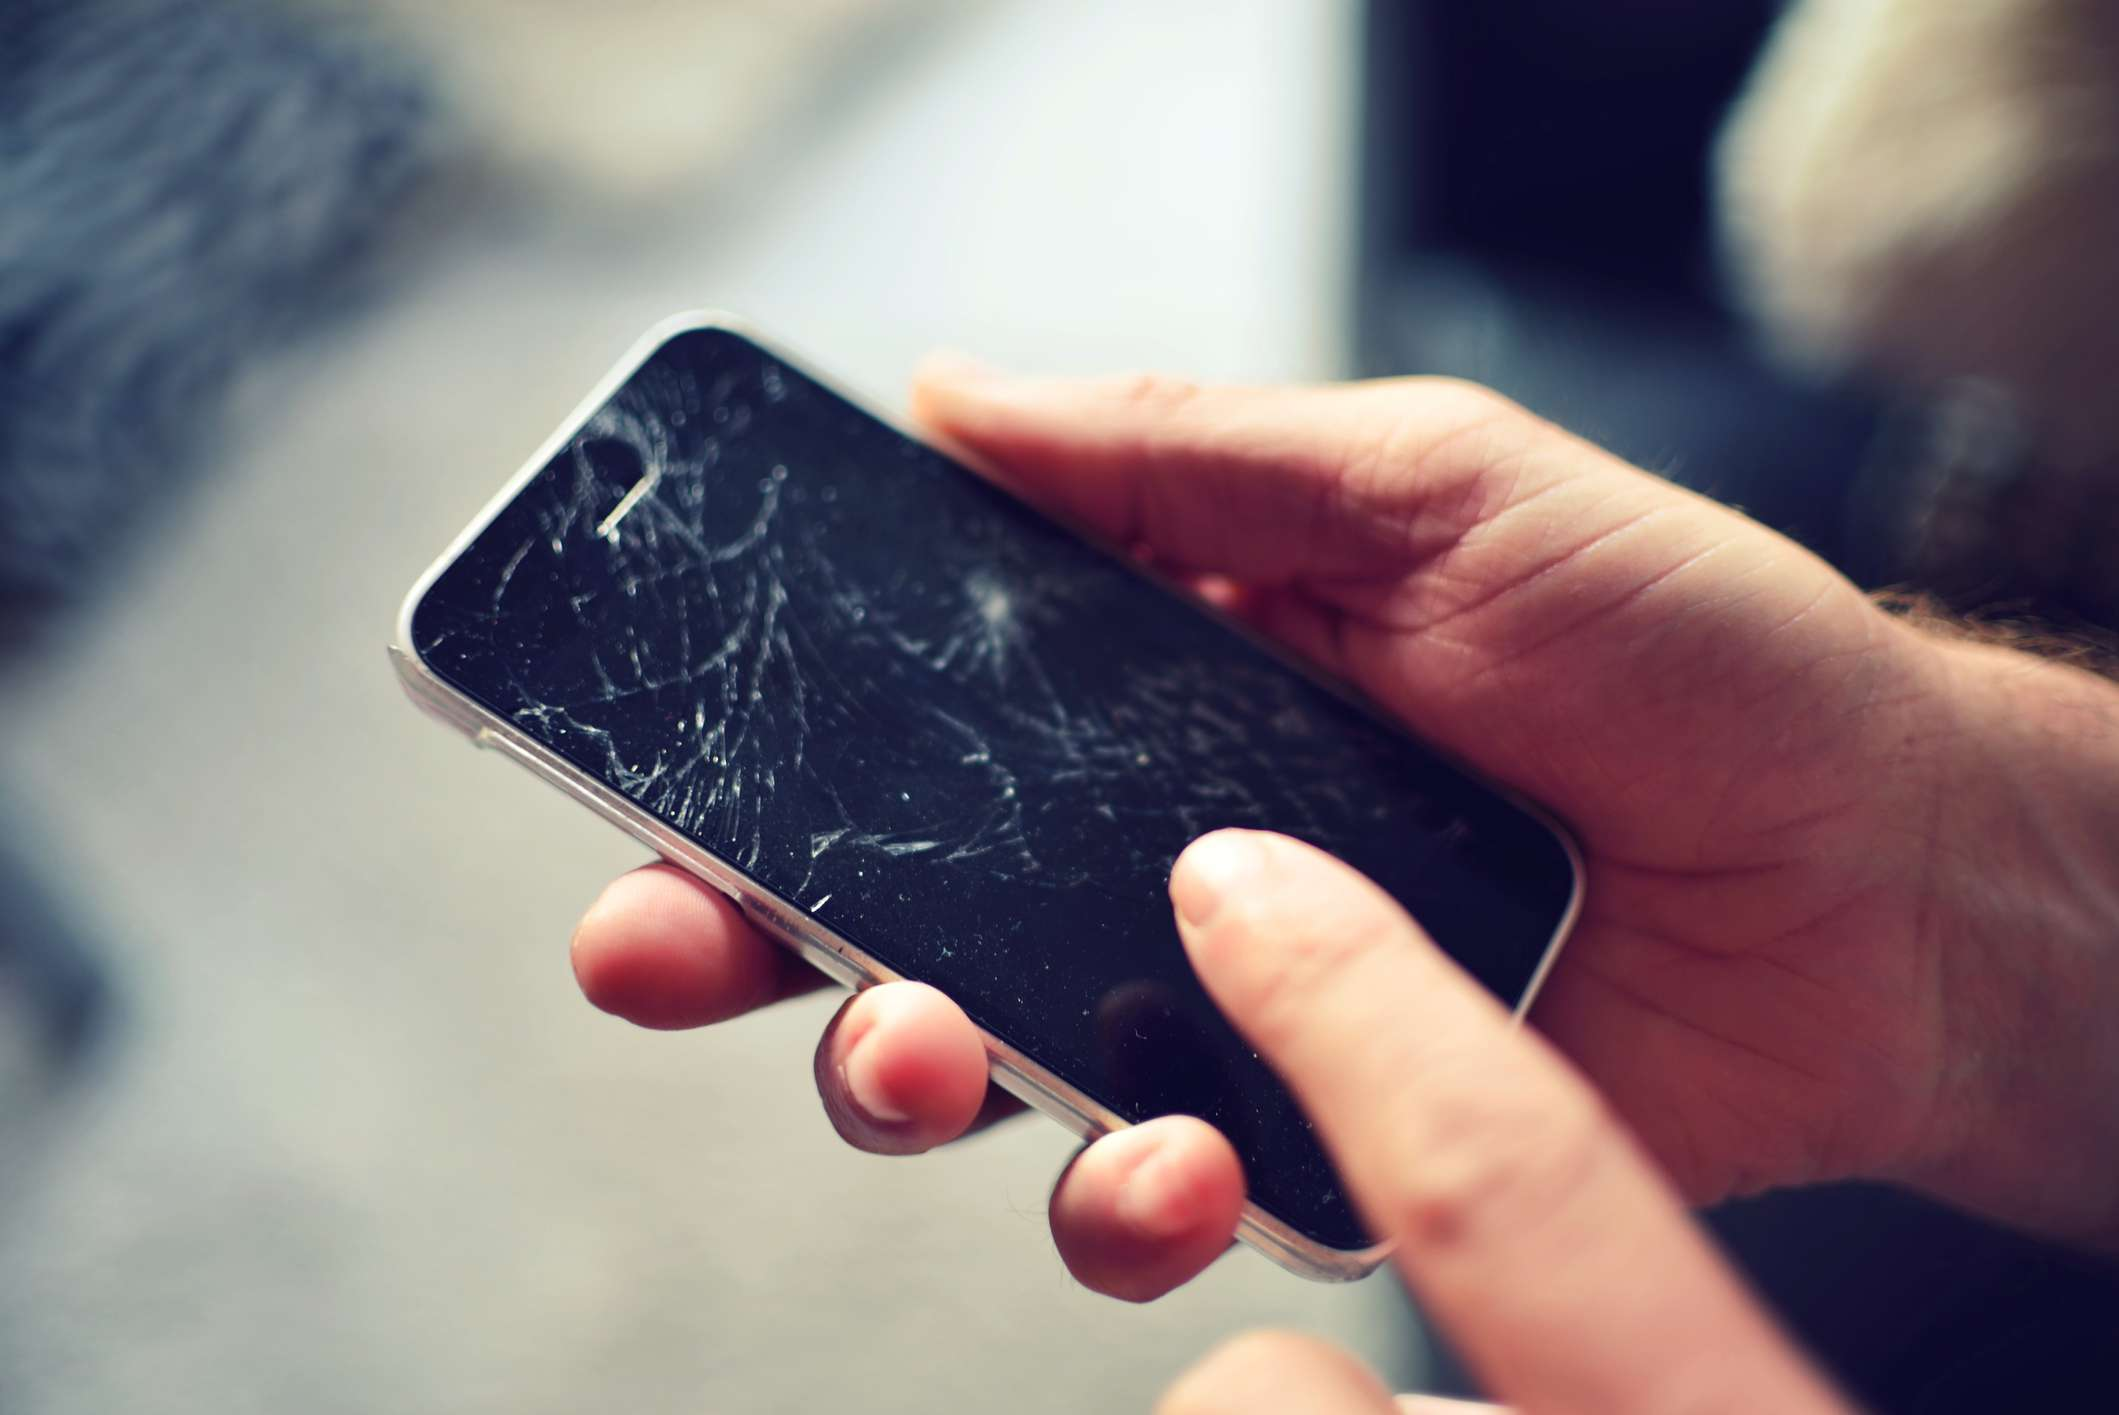 Someone holding a smartphone with a broken screen.